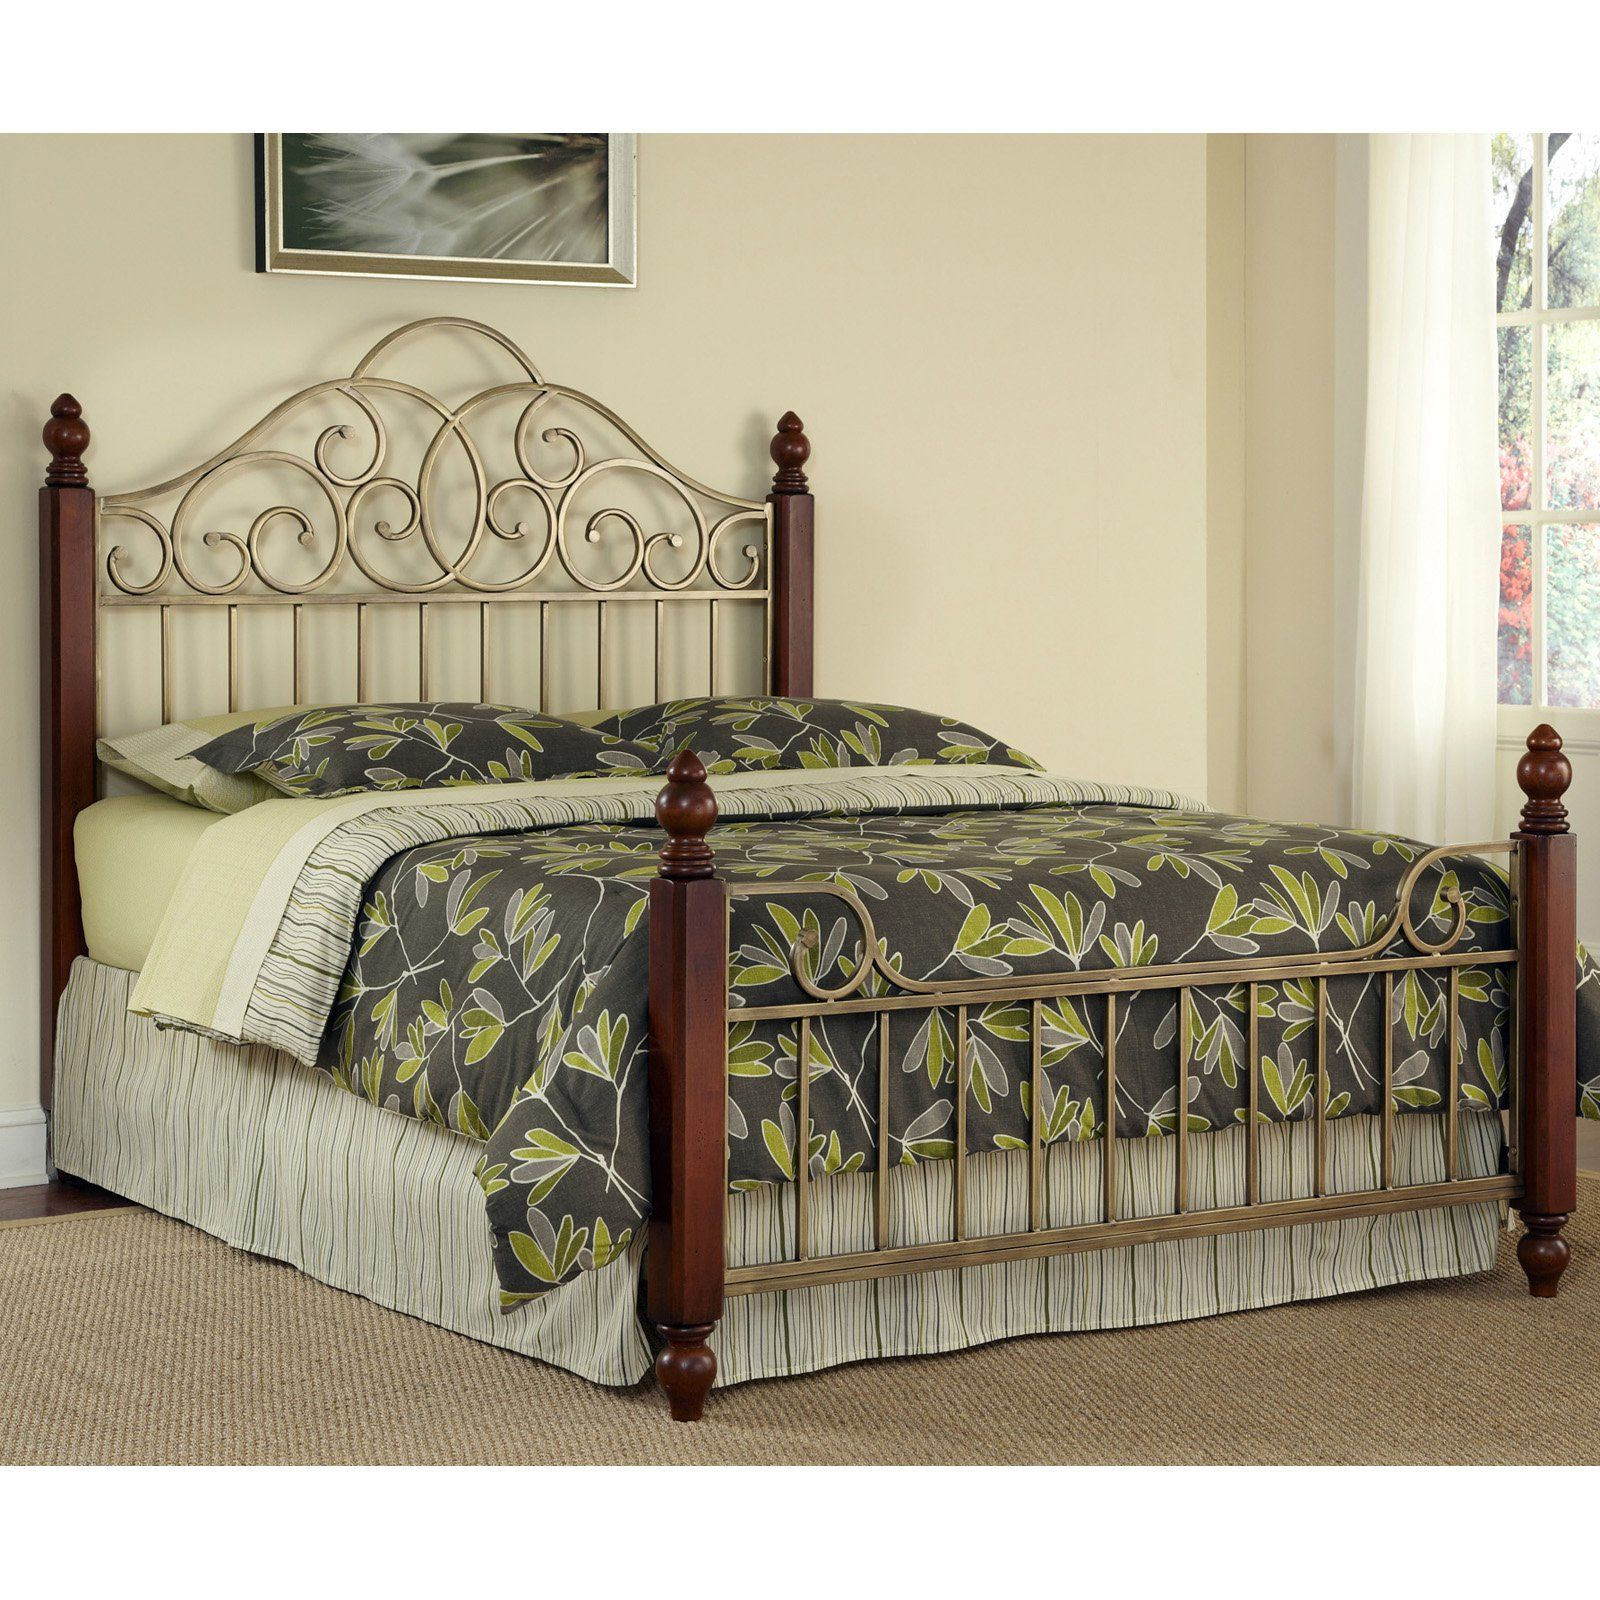 Home Styles St. Ives Bed, Size Queen California king